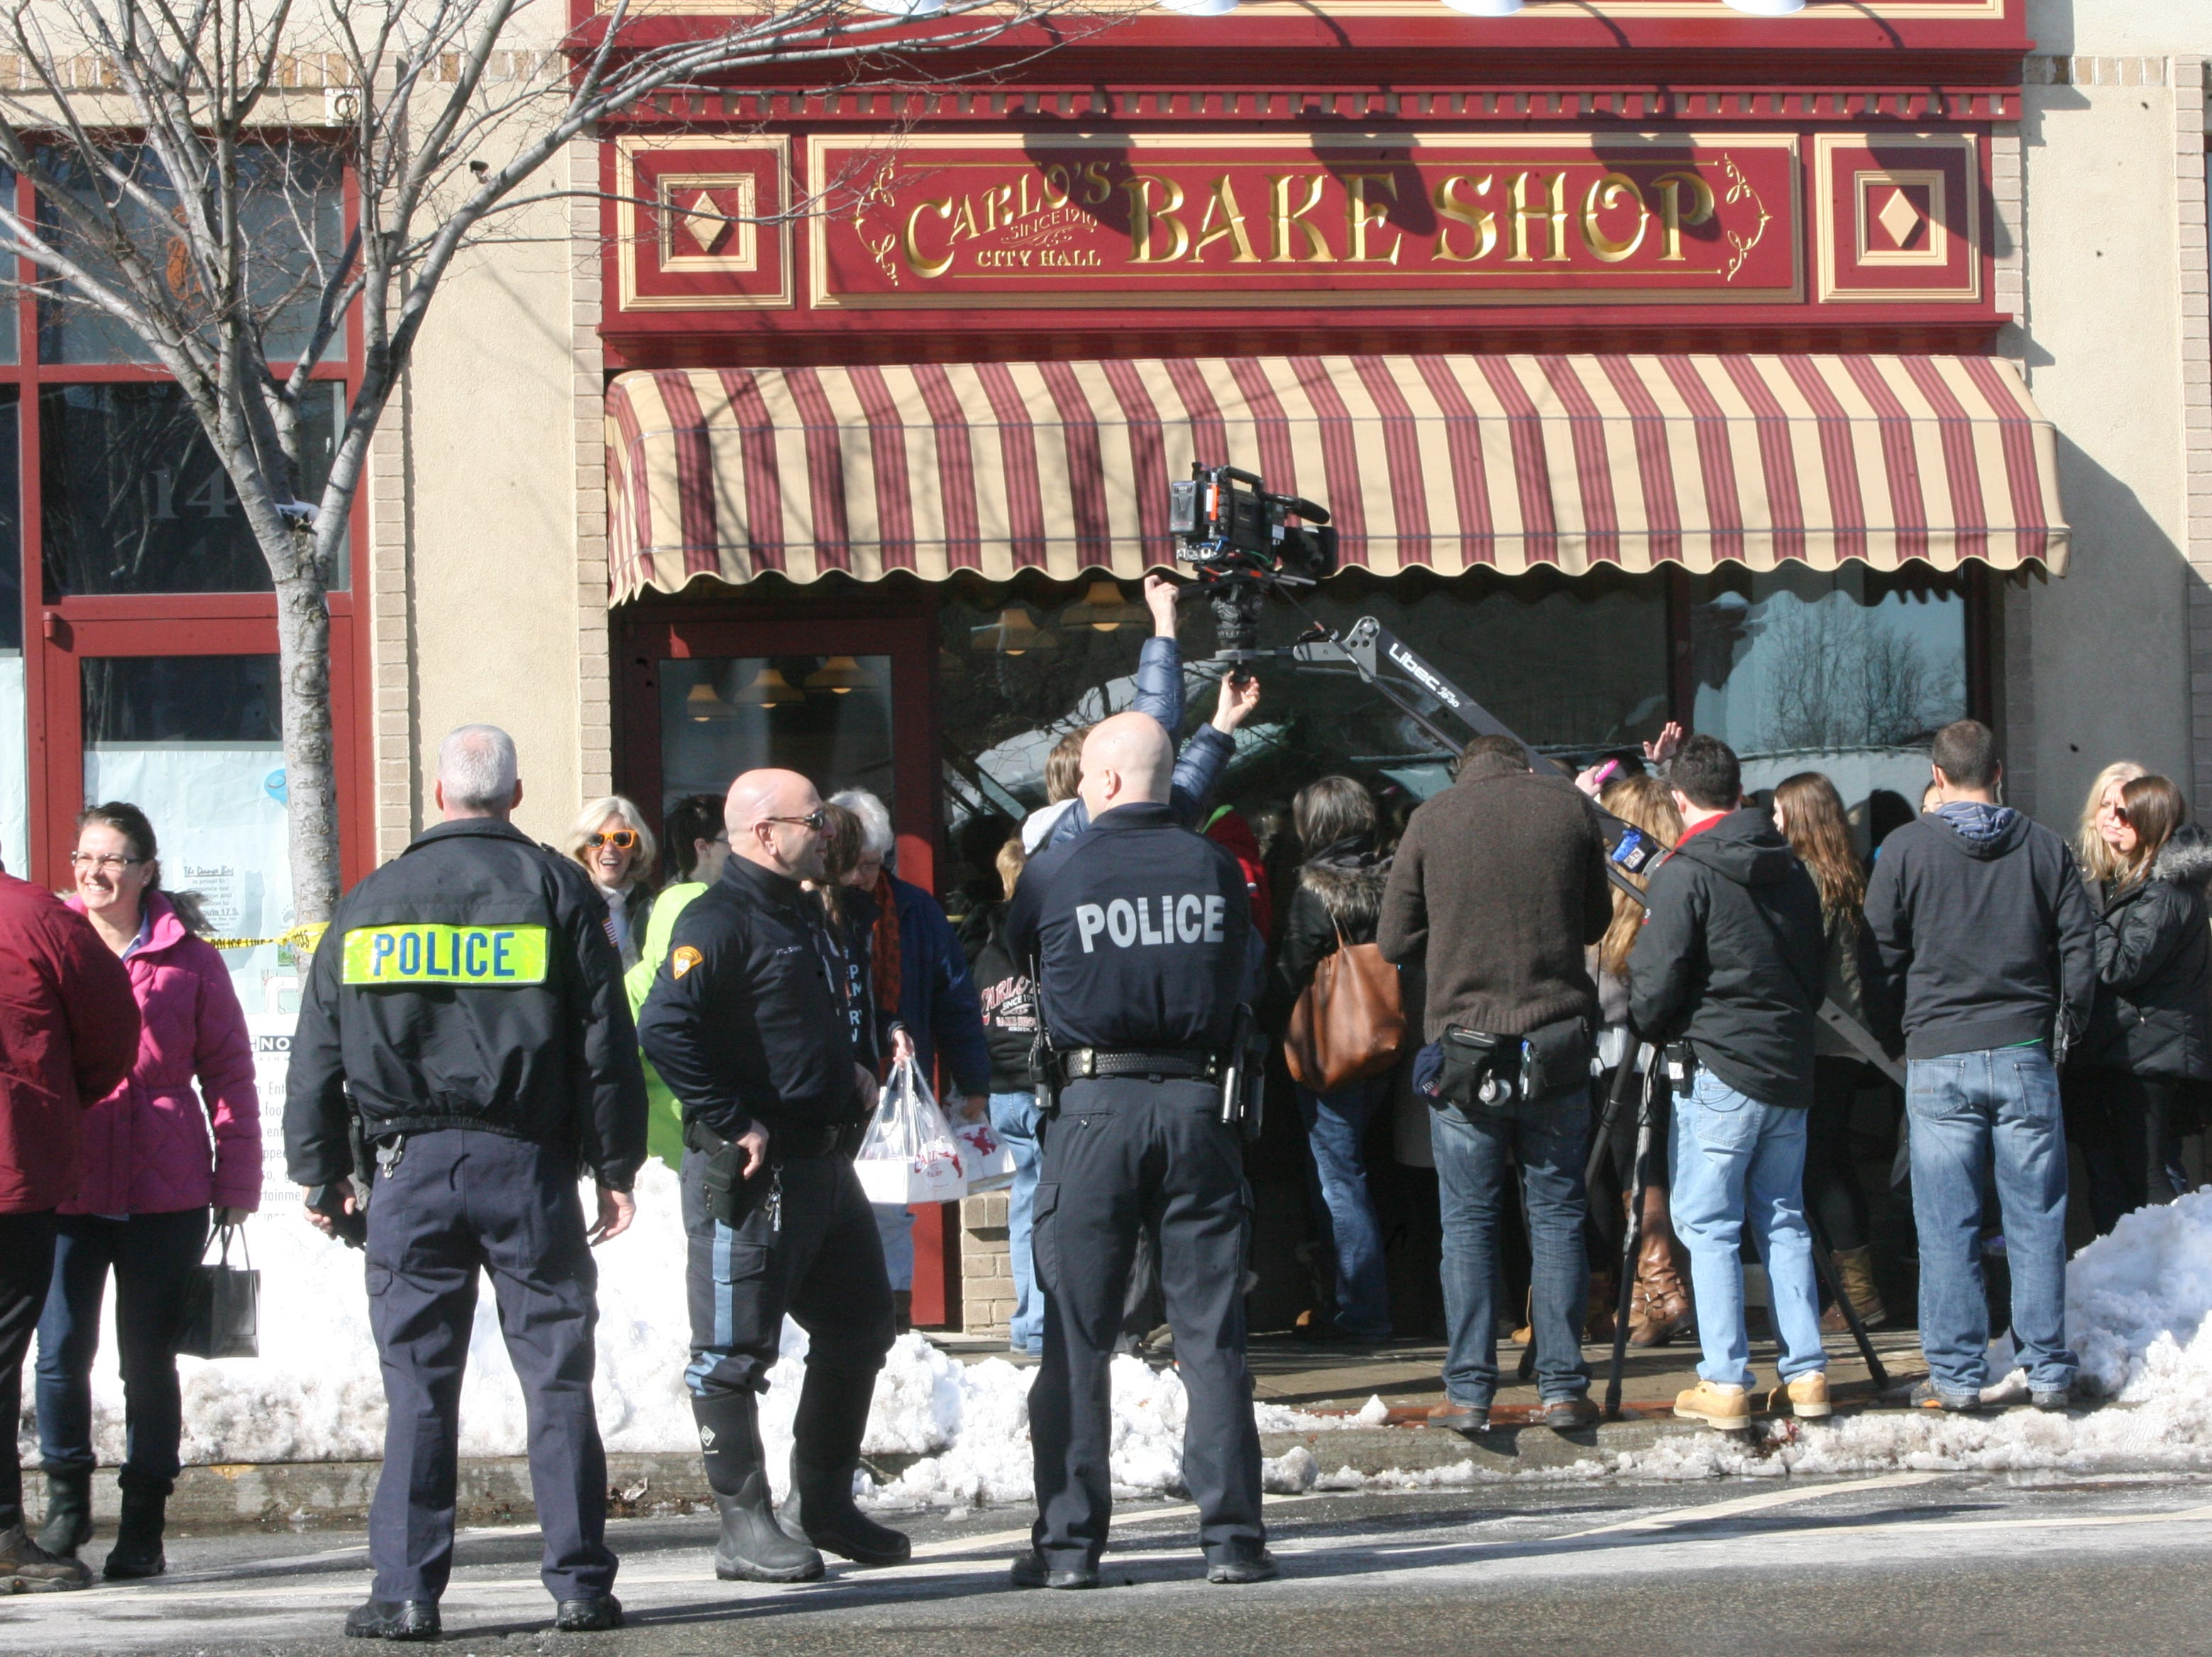 The grand opening of a new Carlos Bakery, as seen in the reality show Cake Boss, opened in Ridgewood, December 2013.